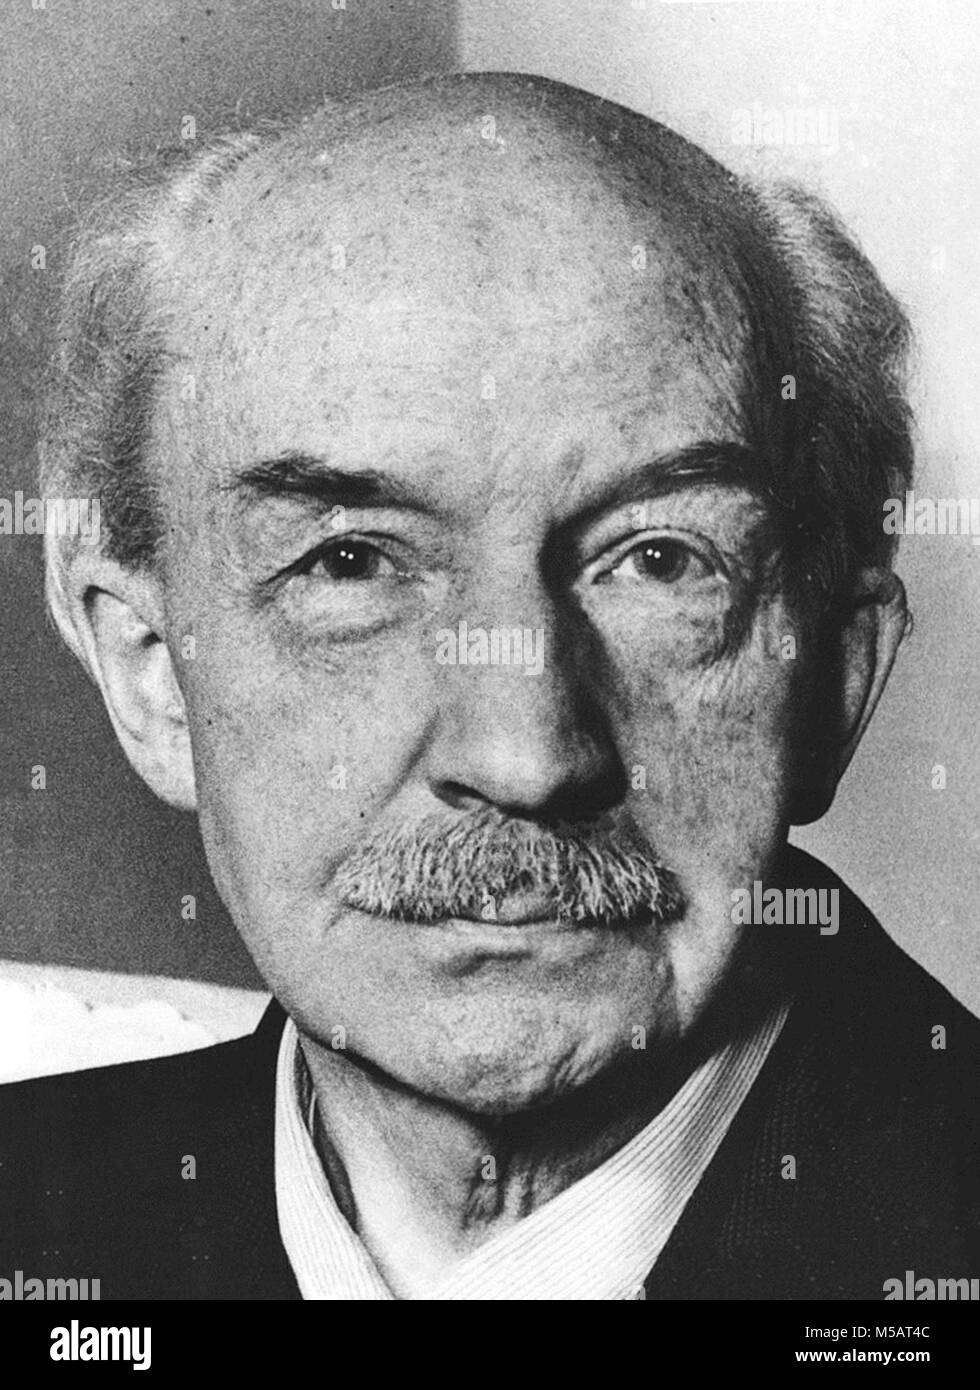 Walther Wilhelm Georg Bothe (1891 – 1957) German nuclear physicist - Stock Image